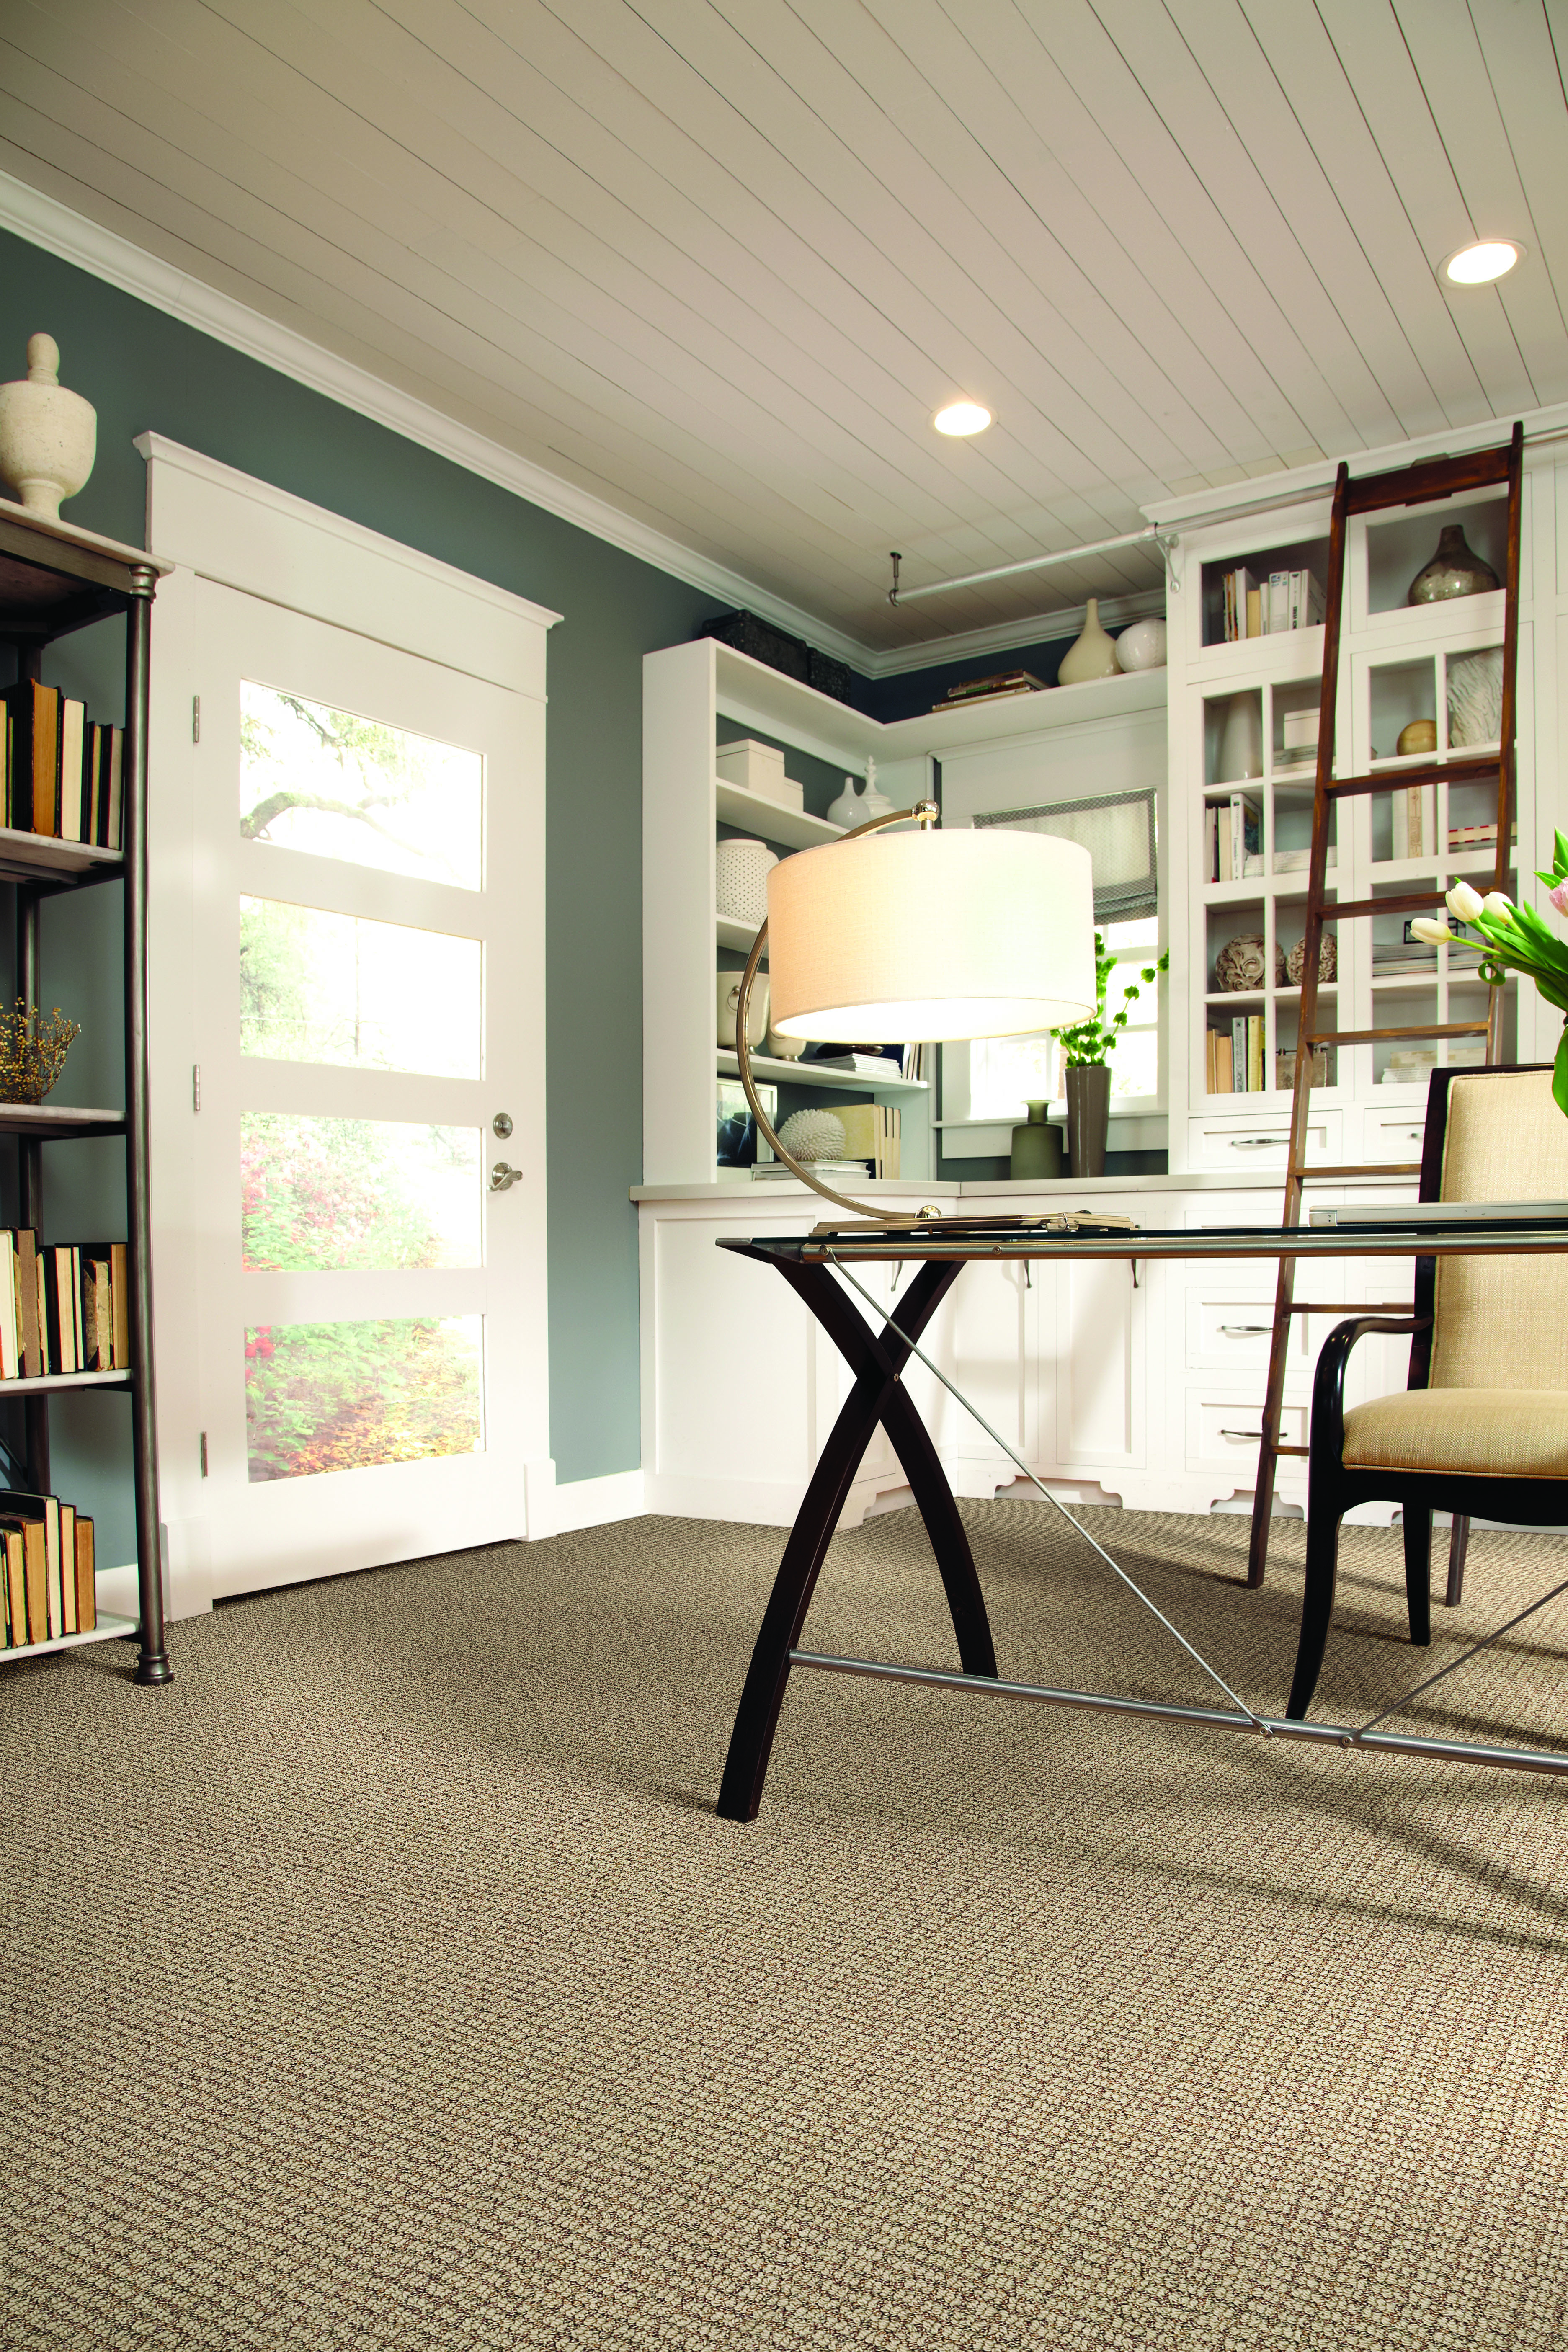 The Type Of Carpeting You Choose For Your Home Depends Greatly On Lifestyle And How 232